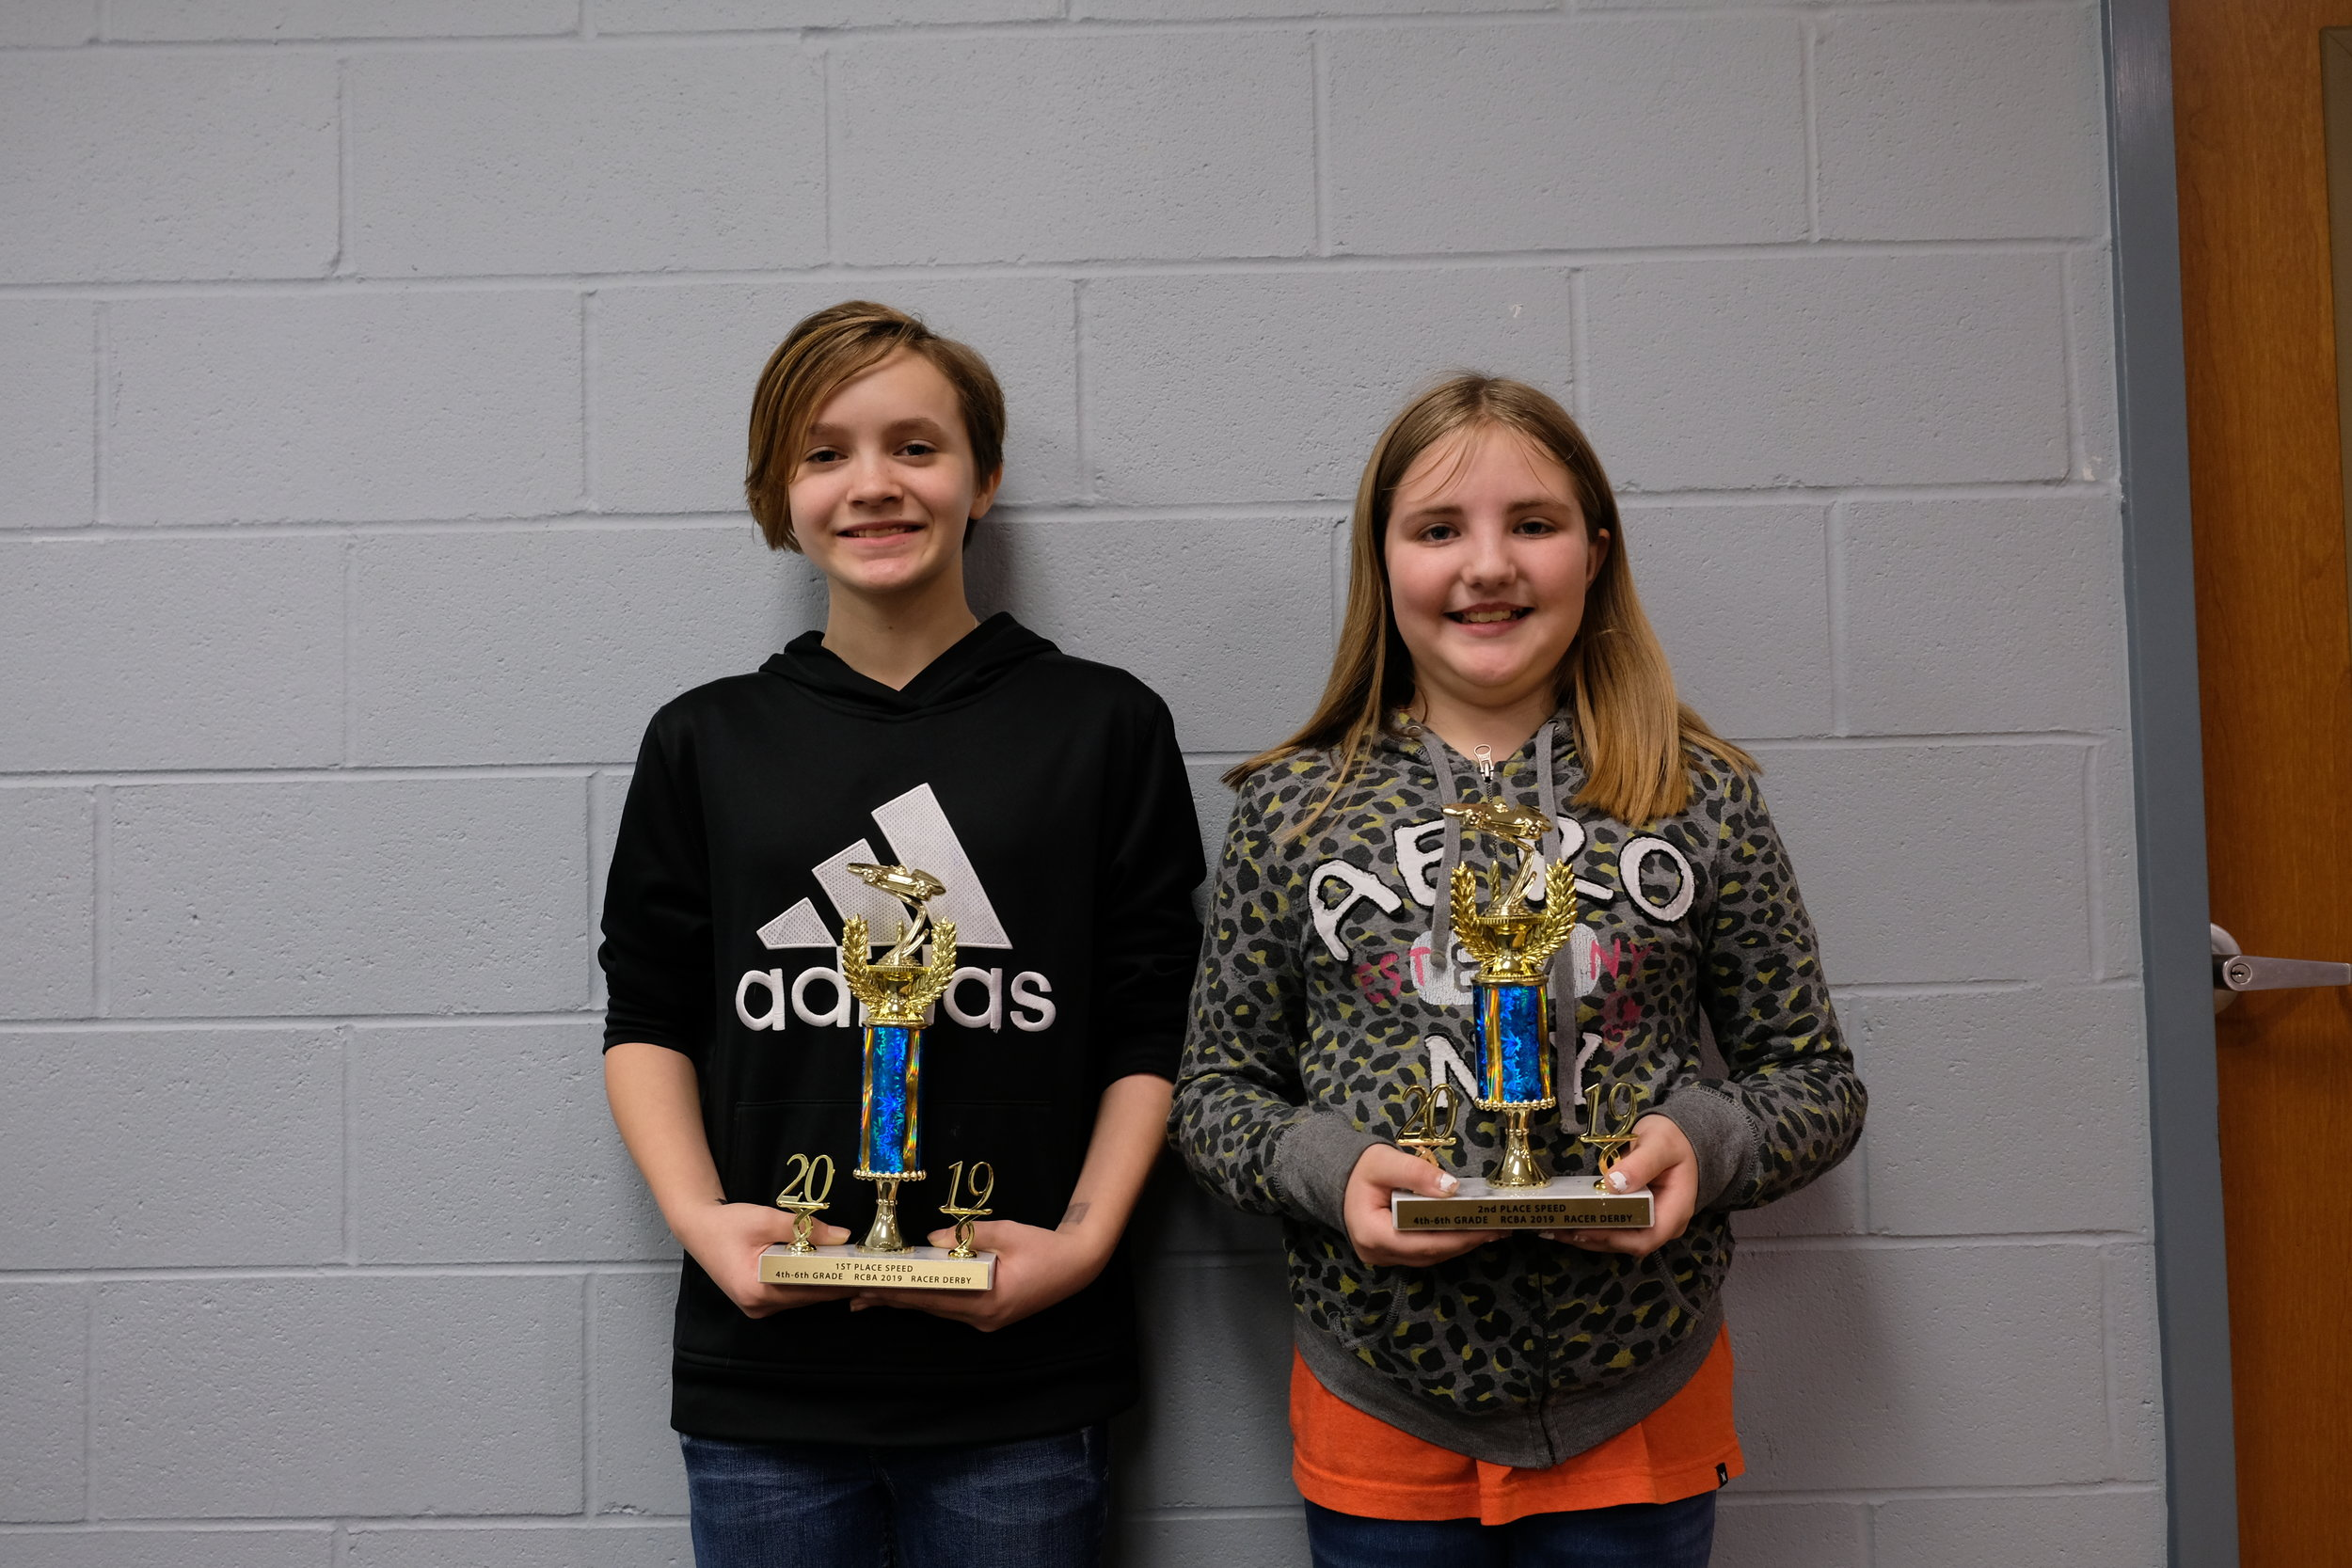 Derby Winners 4th - 6th Grades Kenya Franklin, Oakland and Savannah Jones, Oakland